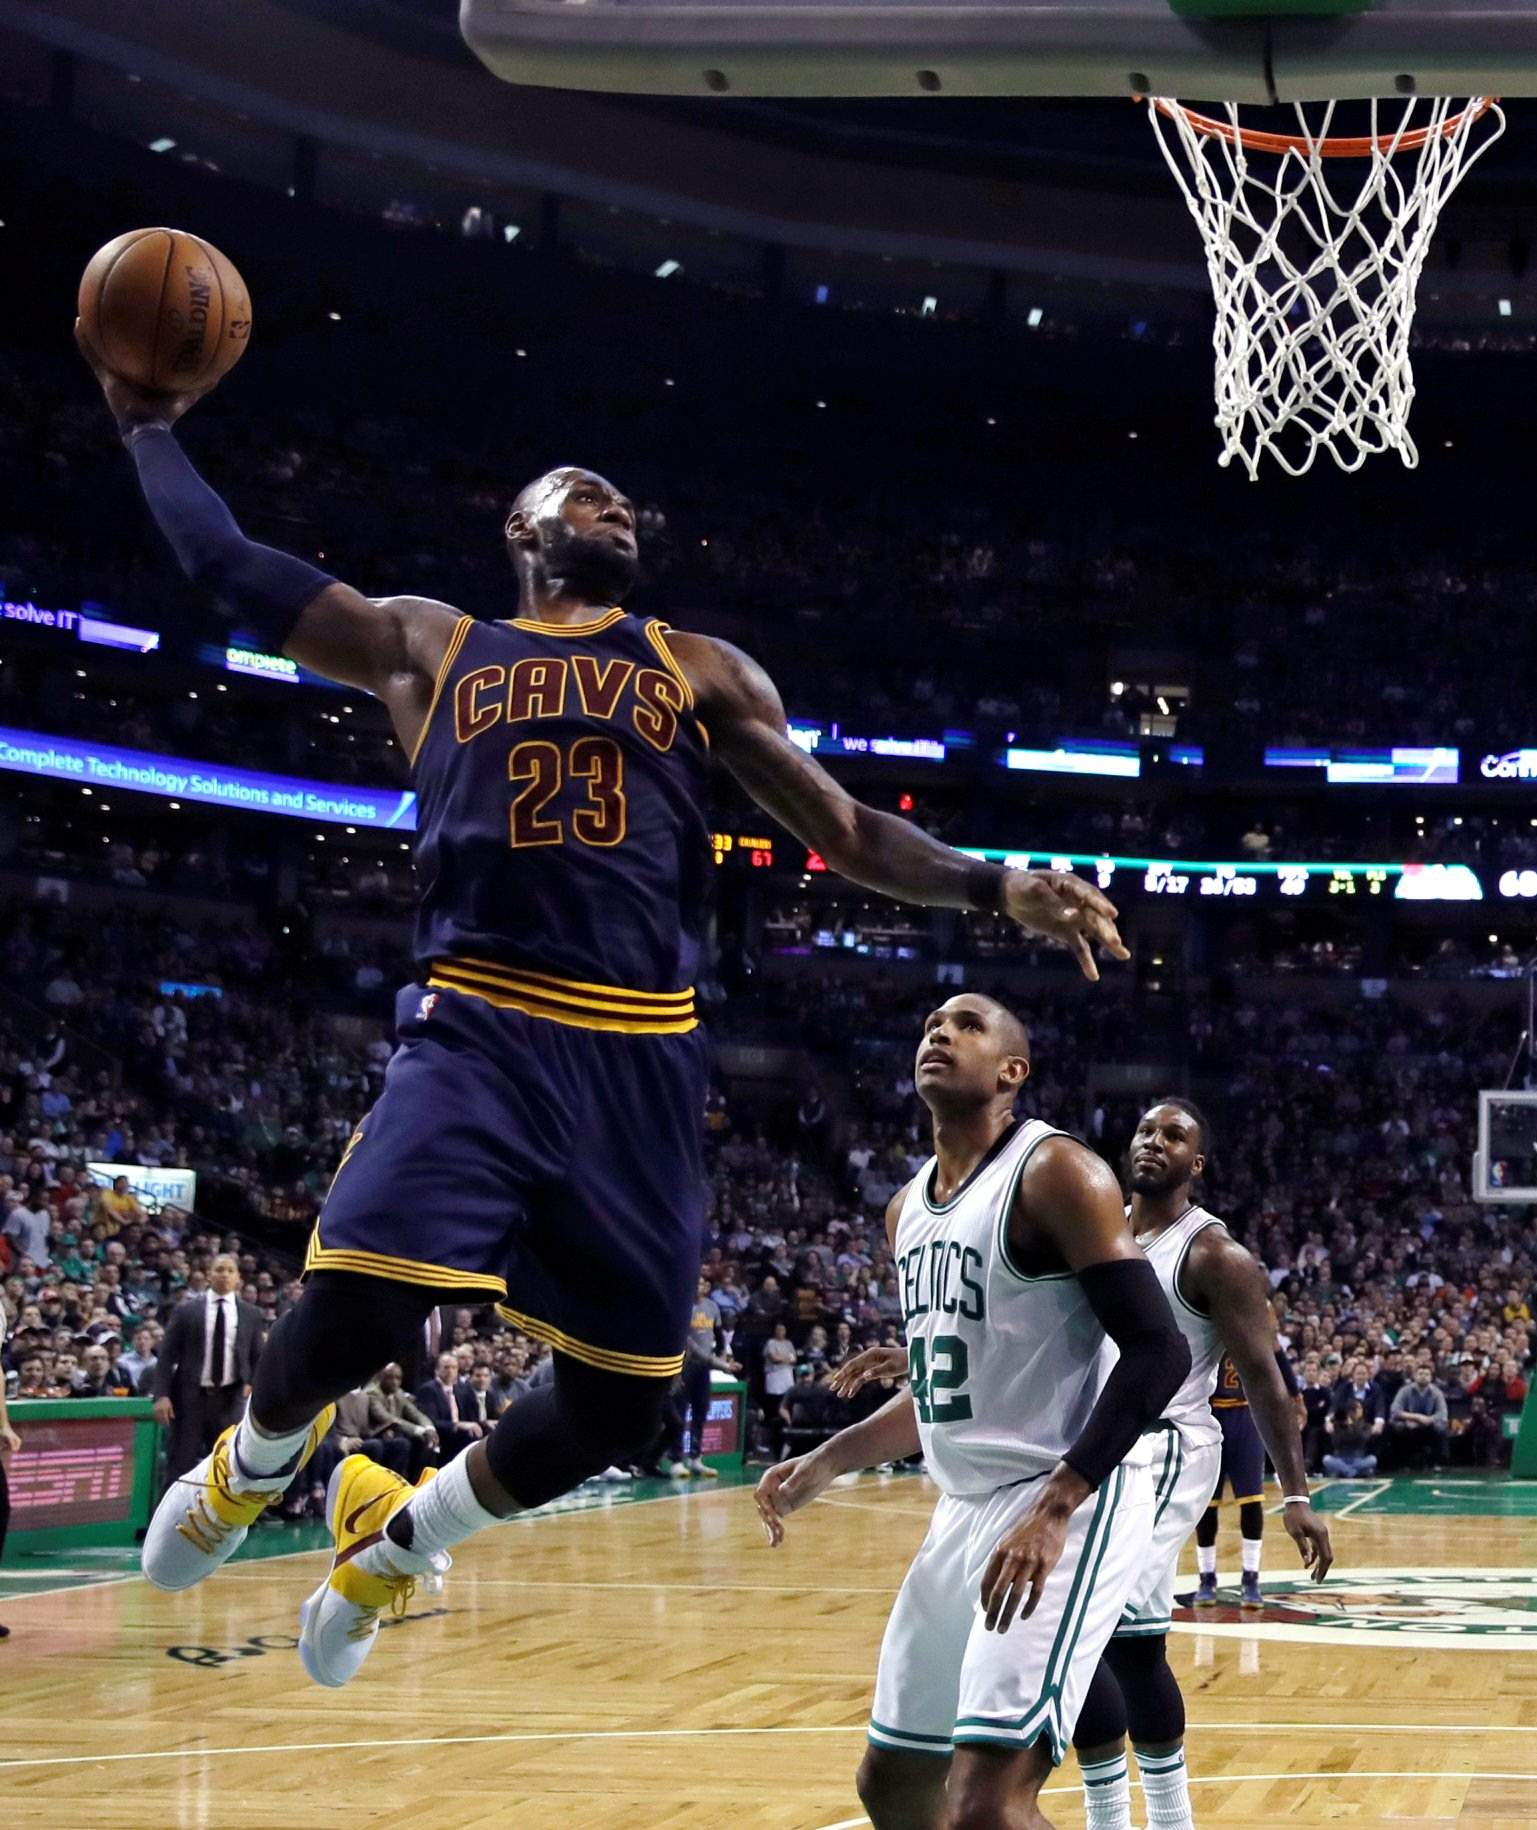 d0d500d86f428 Cleveland Cavaliers forward LeBron James (23) lines up a dunk against  Boston Celtics center Al Horford (42). The defending champion Cavaliers  have been ...